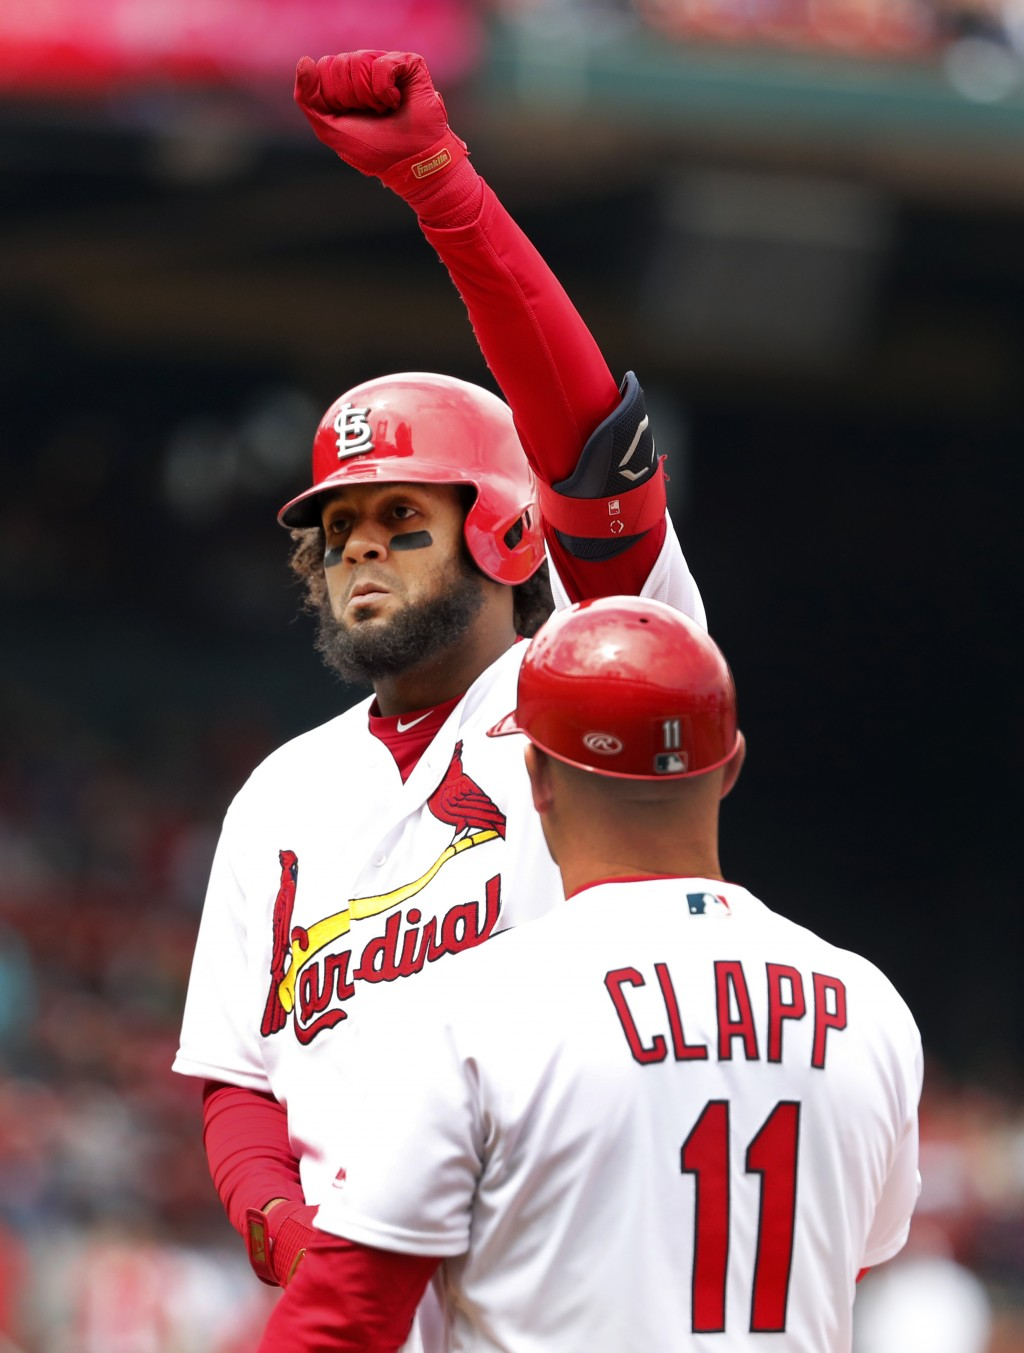 St. Louis Cardinals' Jose Martinez celebrates after hitting an RBI-single as first base coach Stubby Clapp (11) watches during the fourth inning of a ...